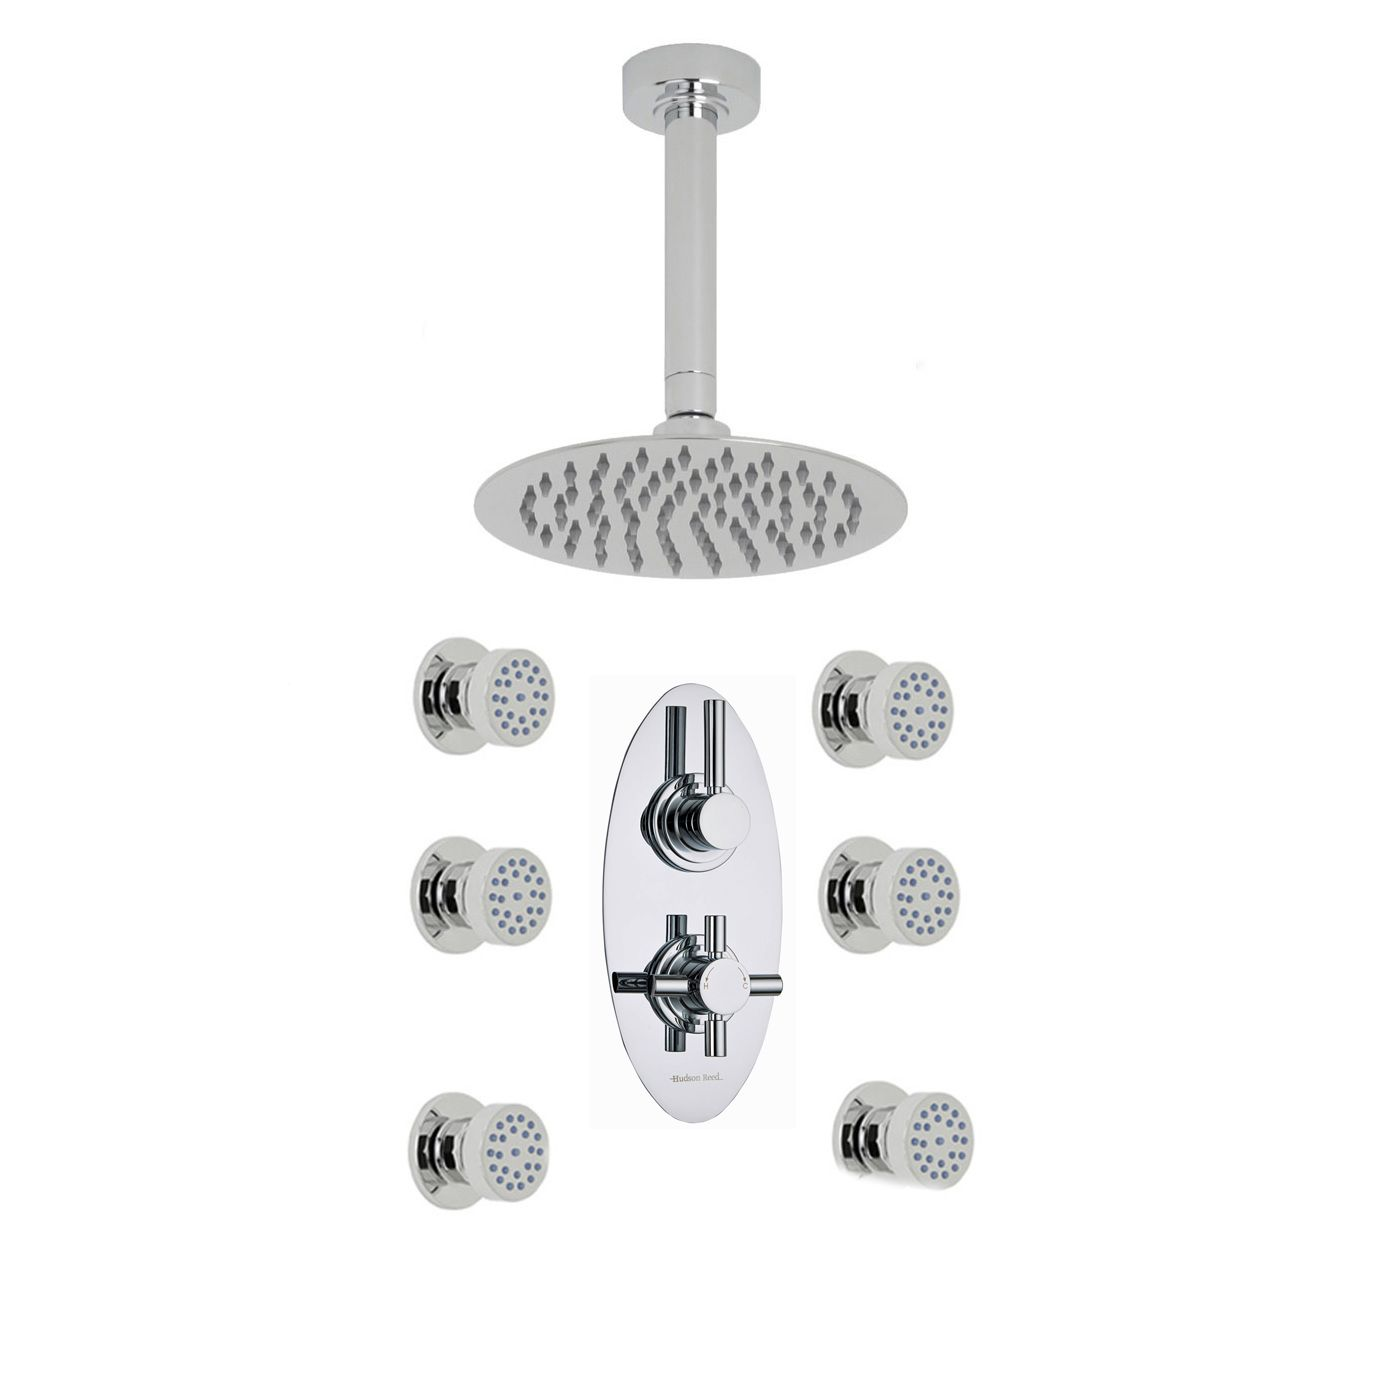 "Tec Thermostatic 2 Outlet Shower System with 8"" Round Head & Ceiling Arm & 6 Round Jet Sprays"